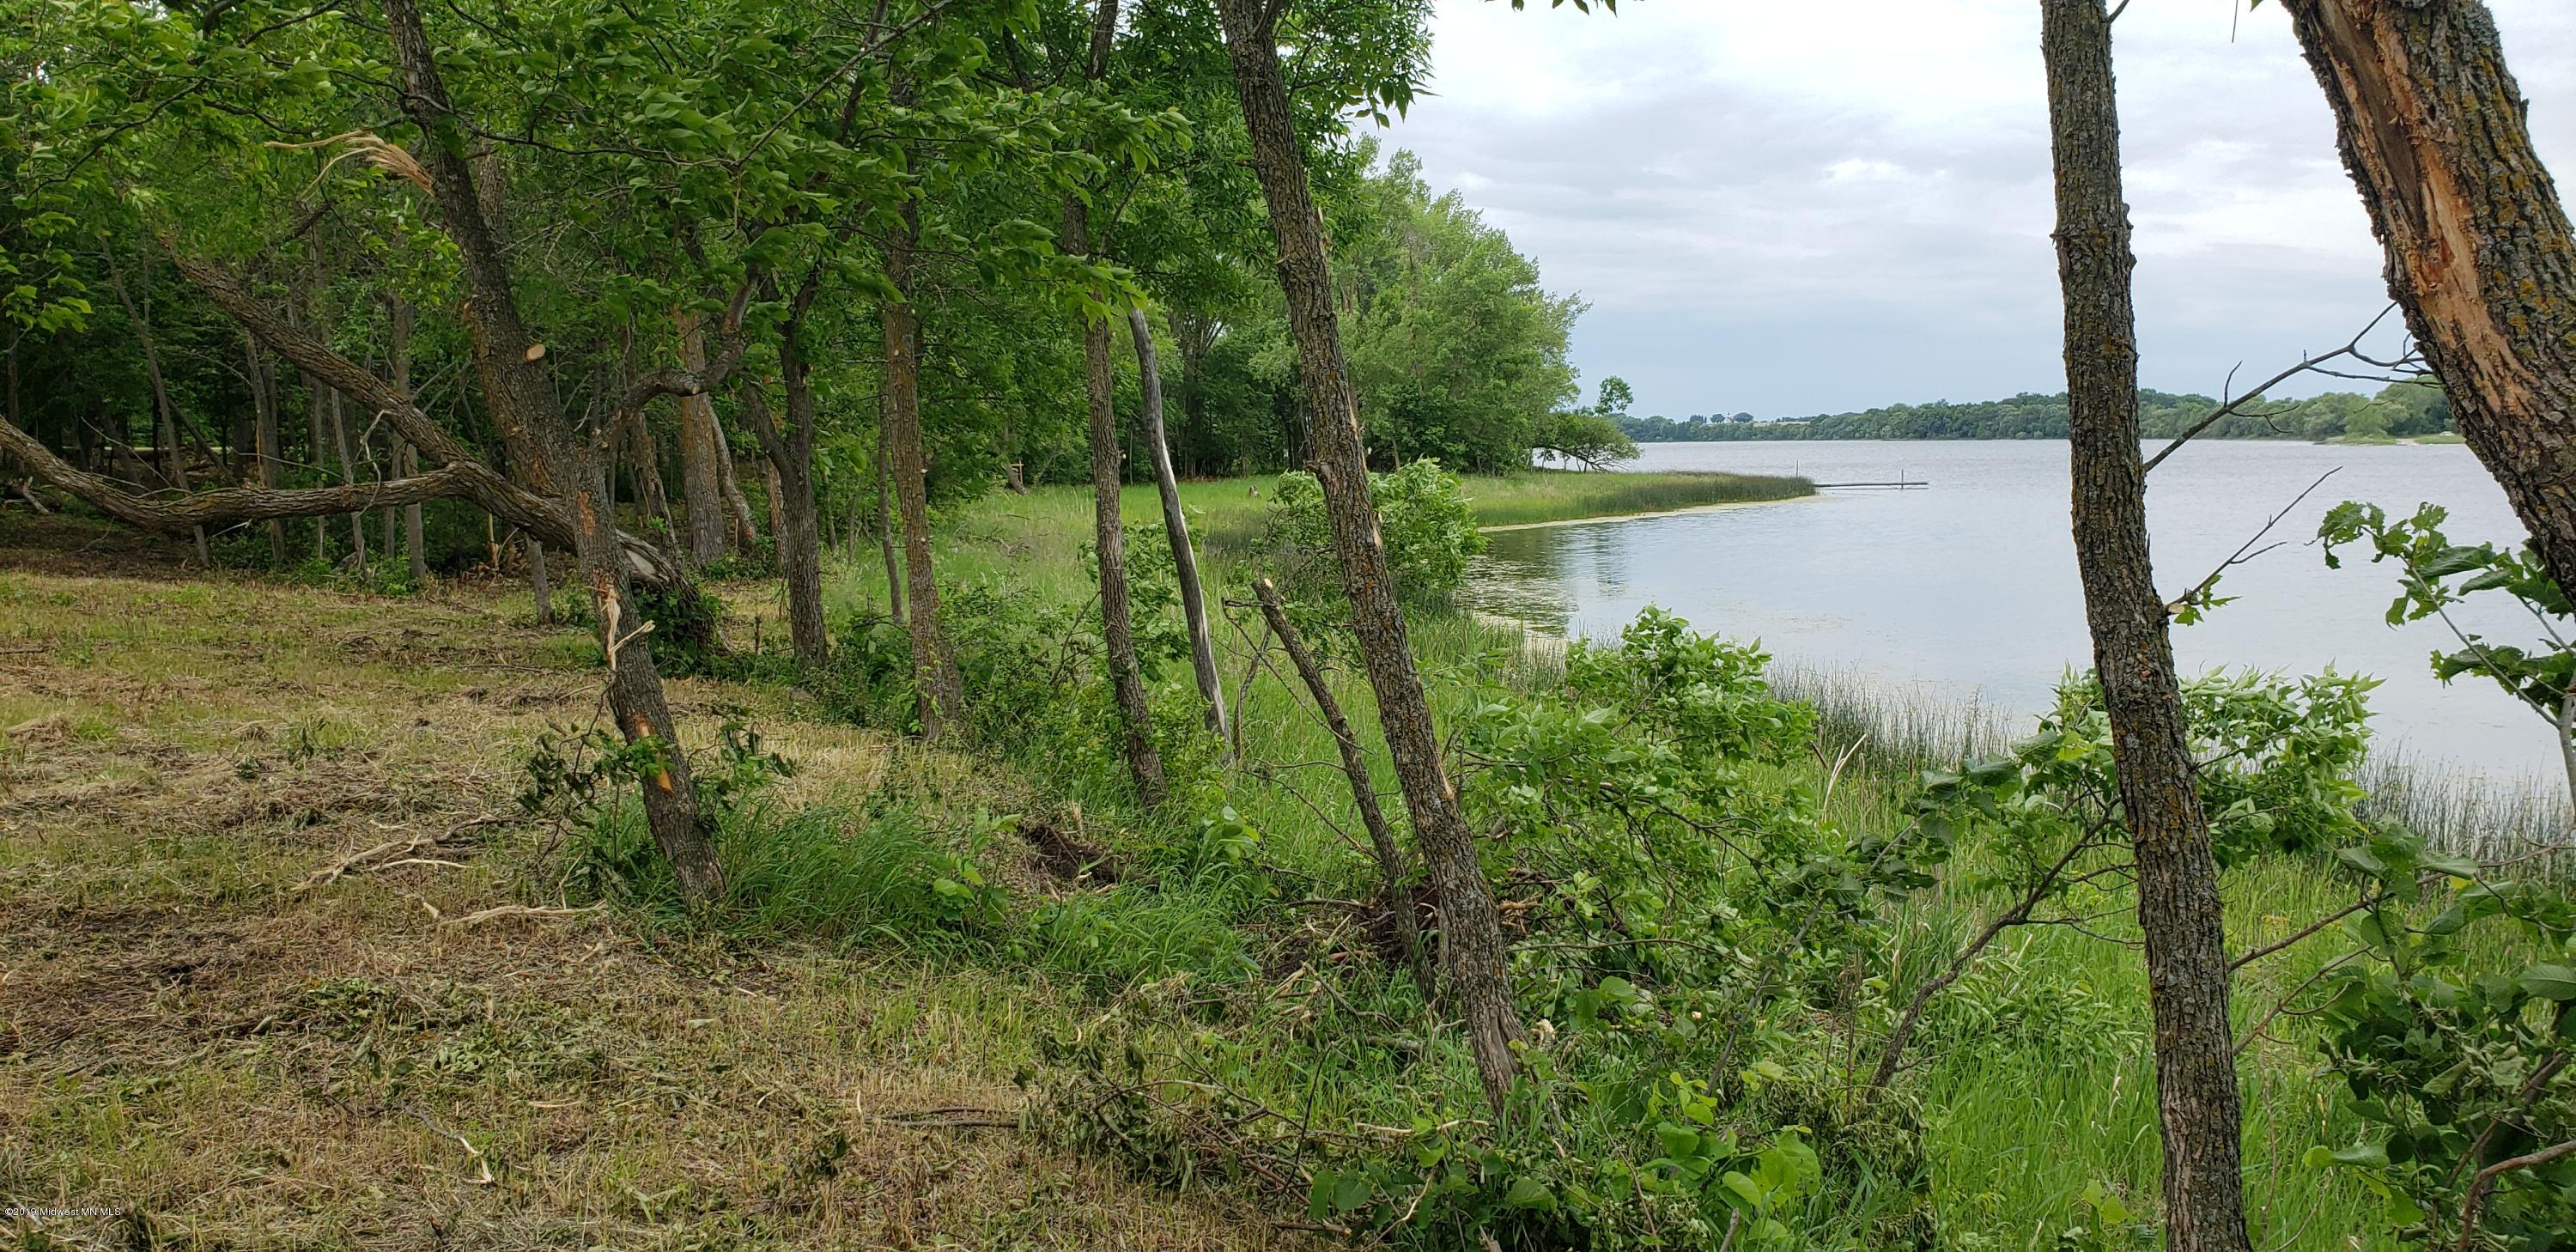 Lot 4 Bluegill Bay Estates - Ashby, MN 56309